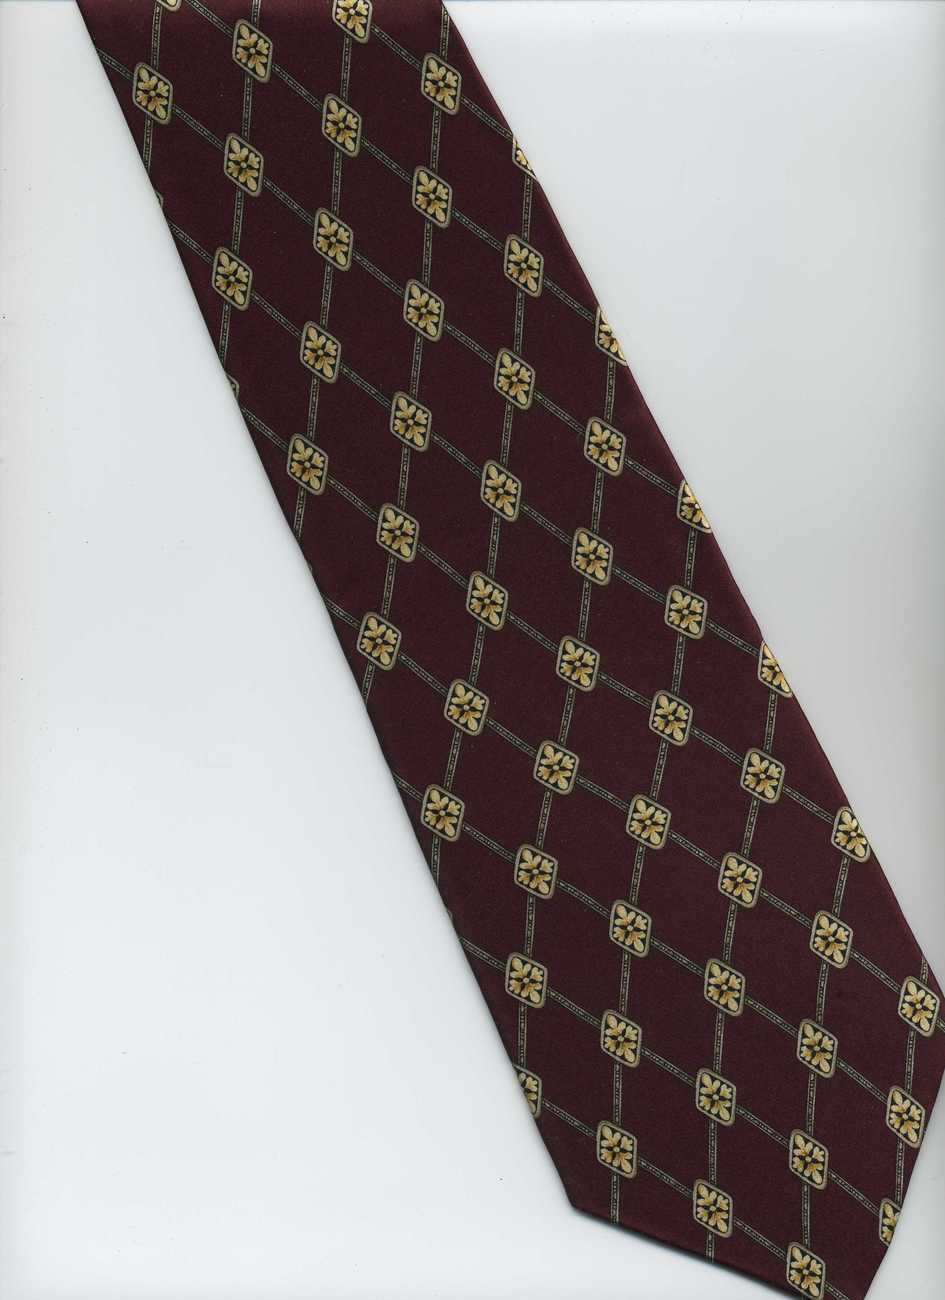 Club Room Tie  Maroon, Gold, Black & Gray  Check Type. Dining Room Tables Ikea. Wooden Home Decor. Decorative Grab Bars. Decoration Magazine. Decorating Kitchen Cabinets. Glass Decor. Built-in Cabinets Living Room. Miniature Christmas Decorations